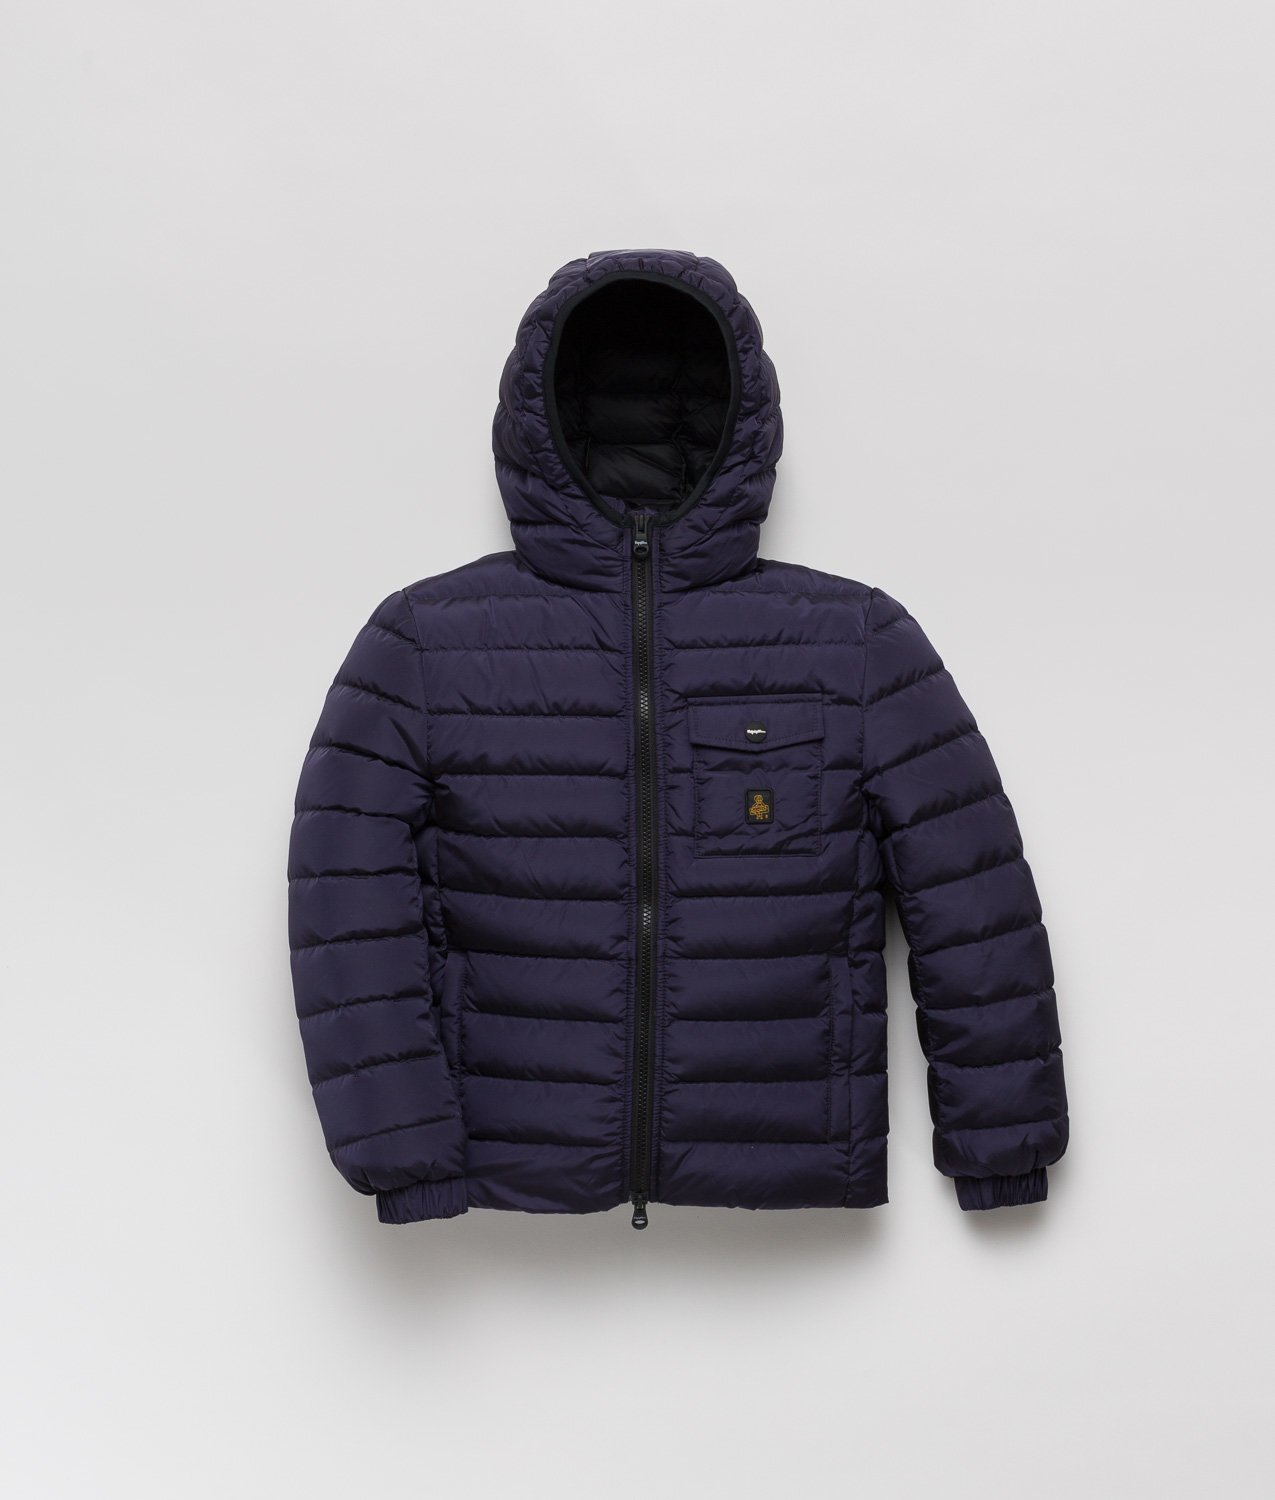 JR HUNTER JACKET